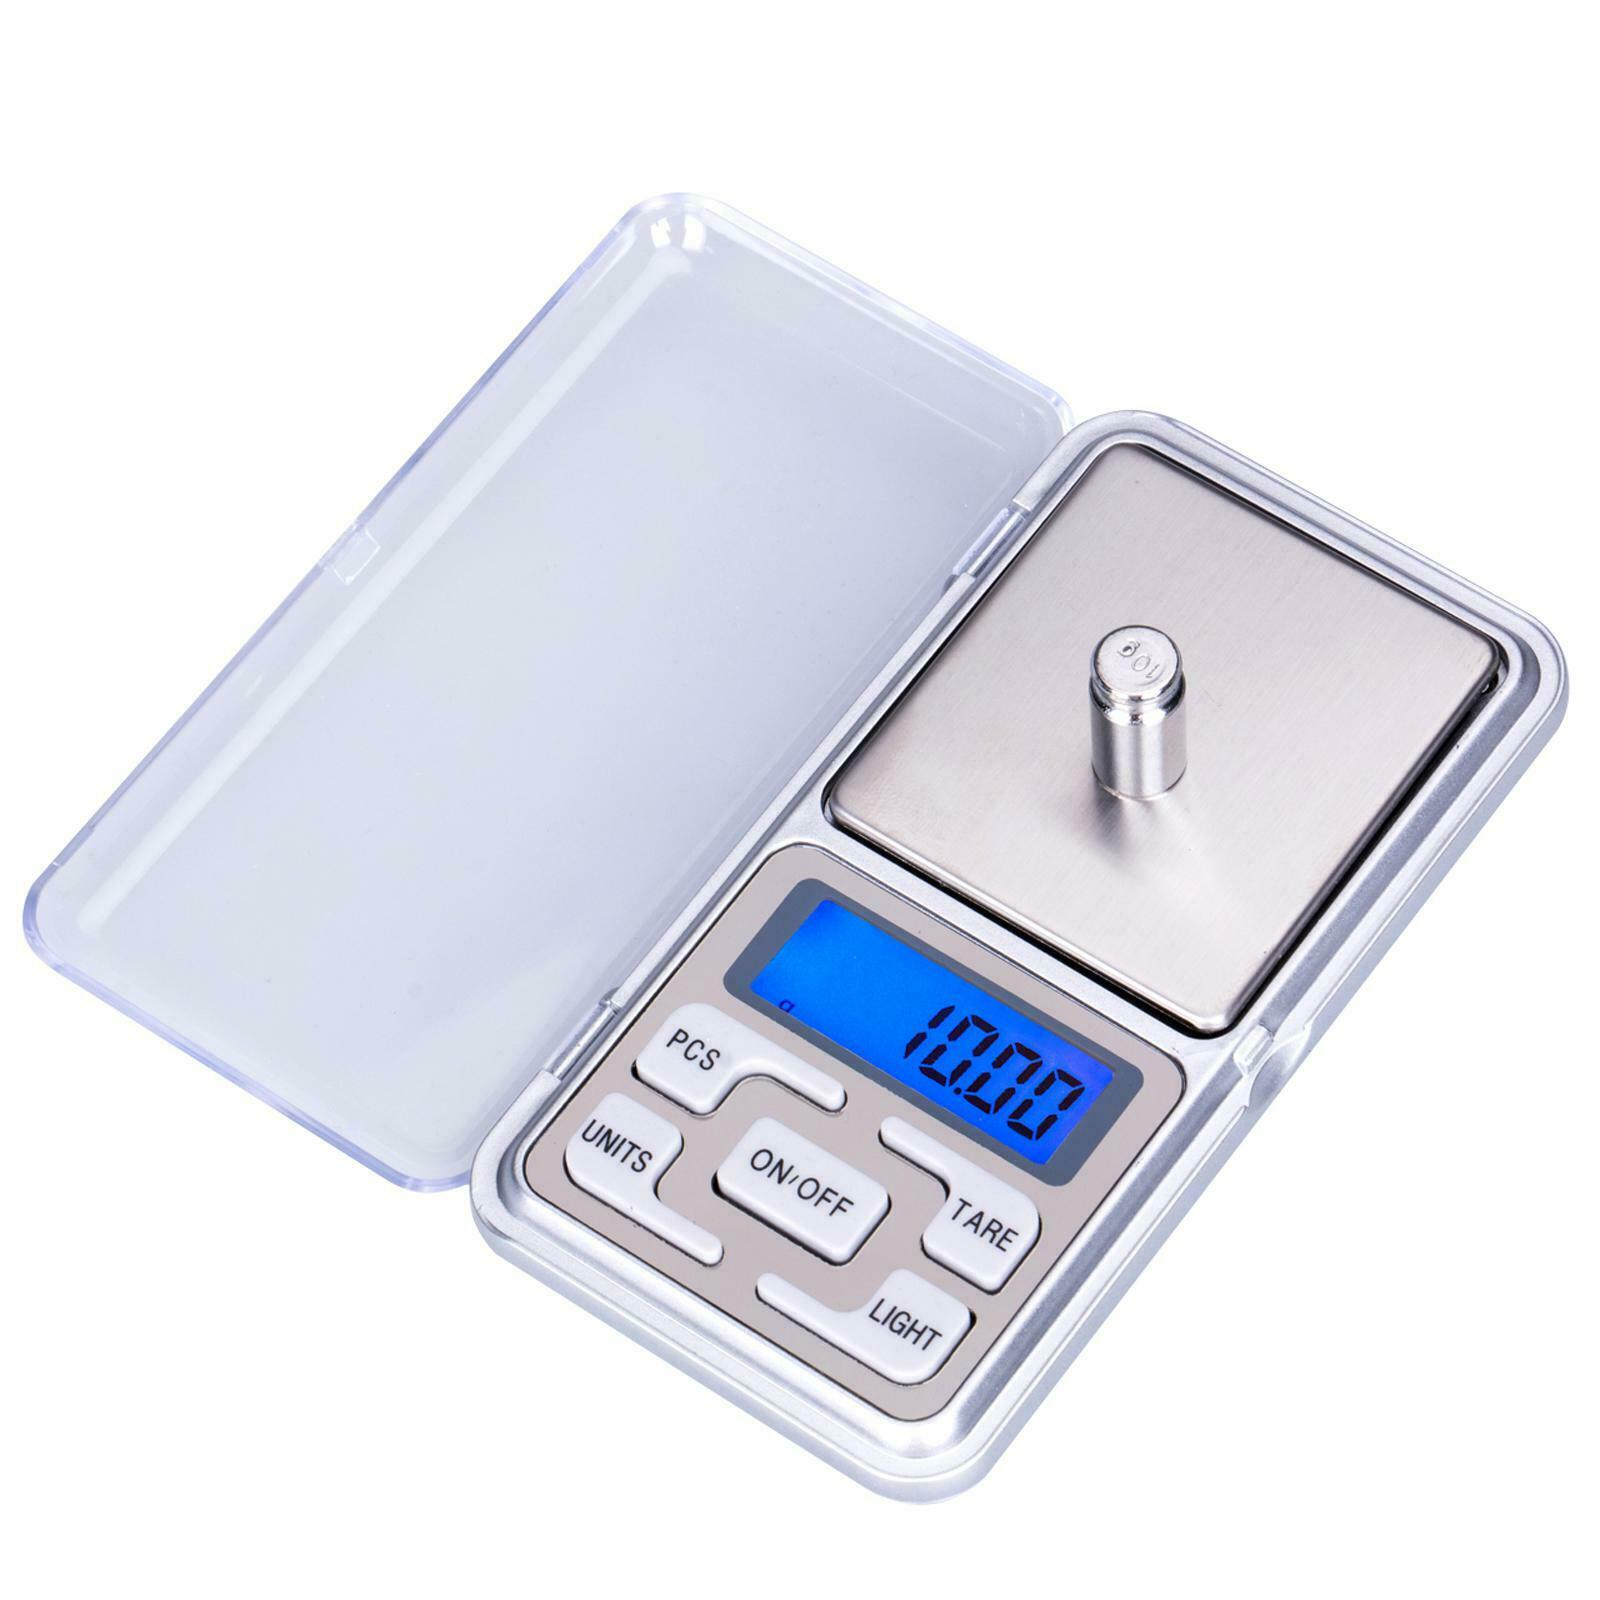 Electronic Pocket Scale 500G/0.1G Precision Jewelry Scale Balance For Diamonds And Gram Weight